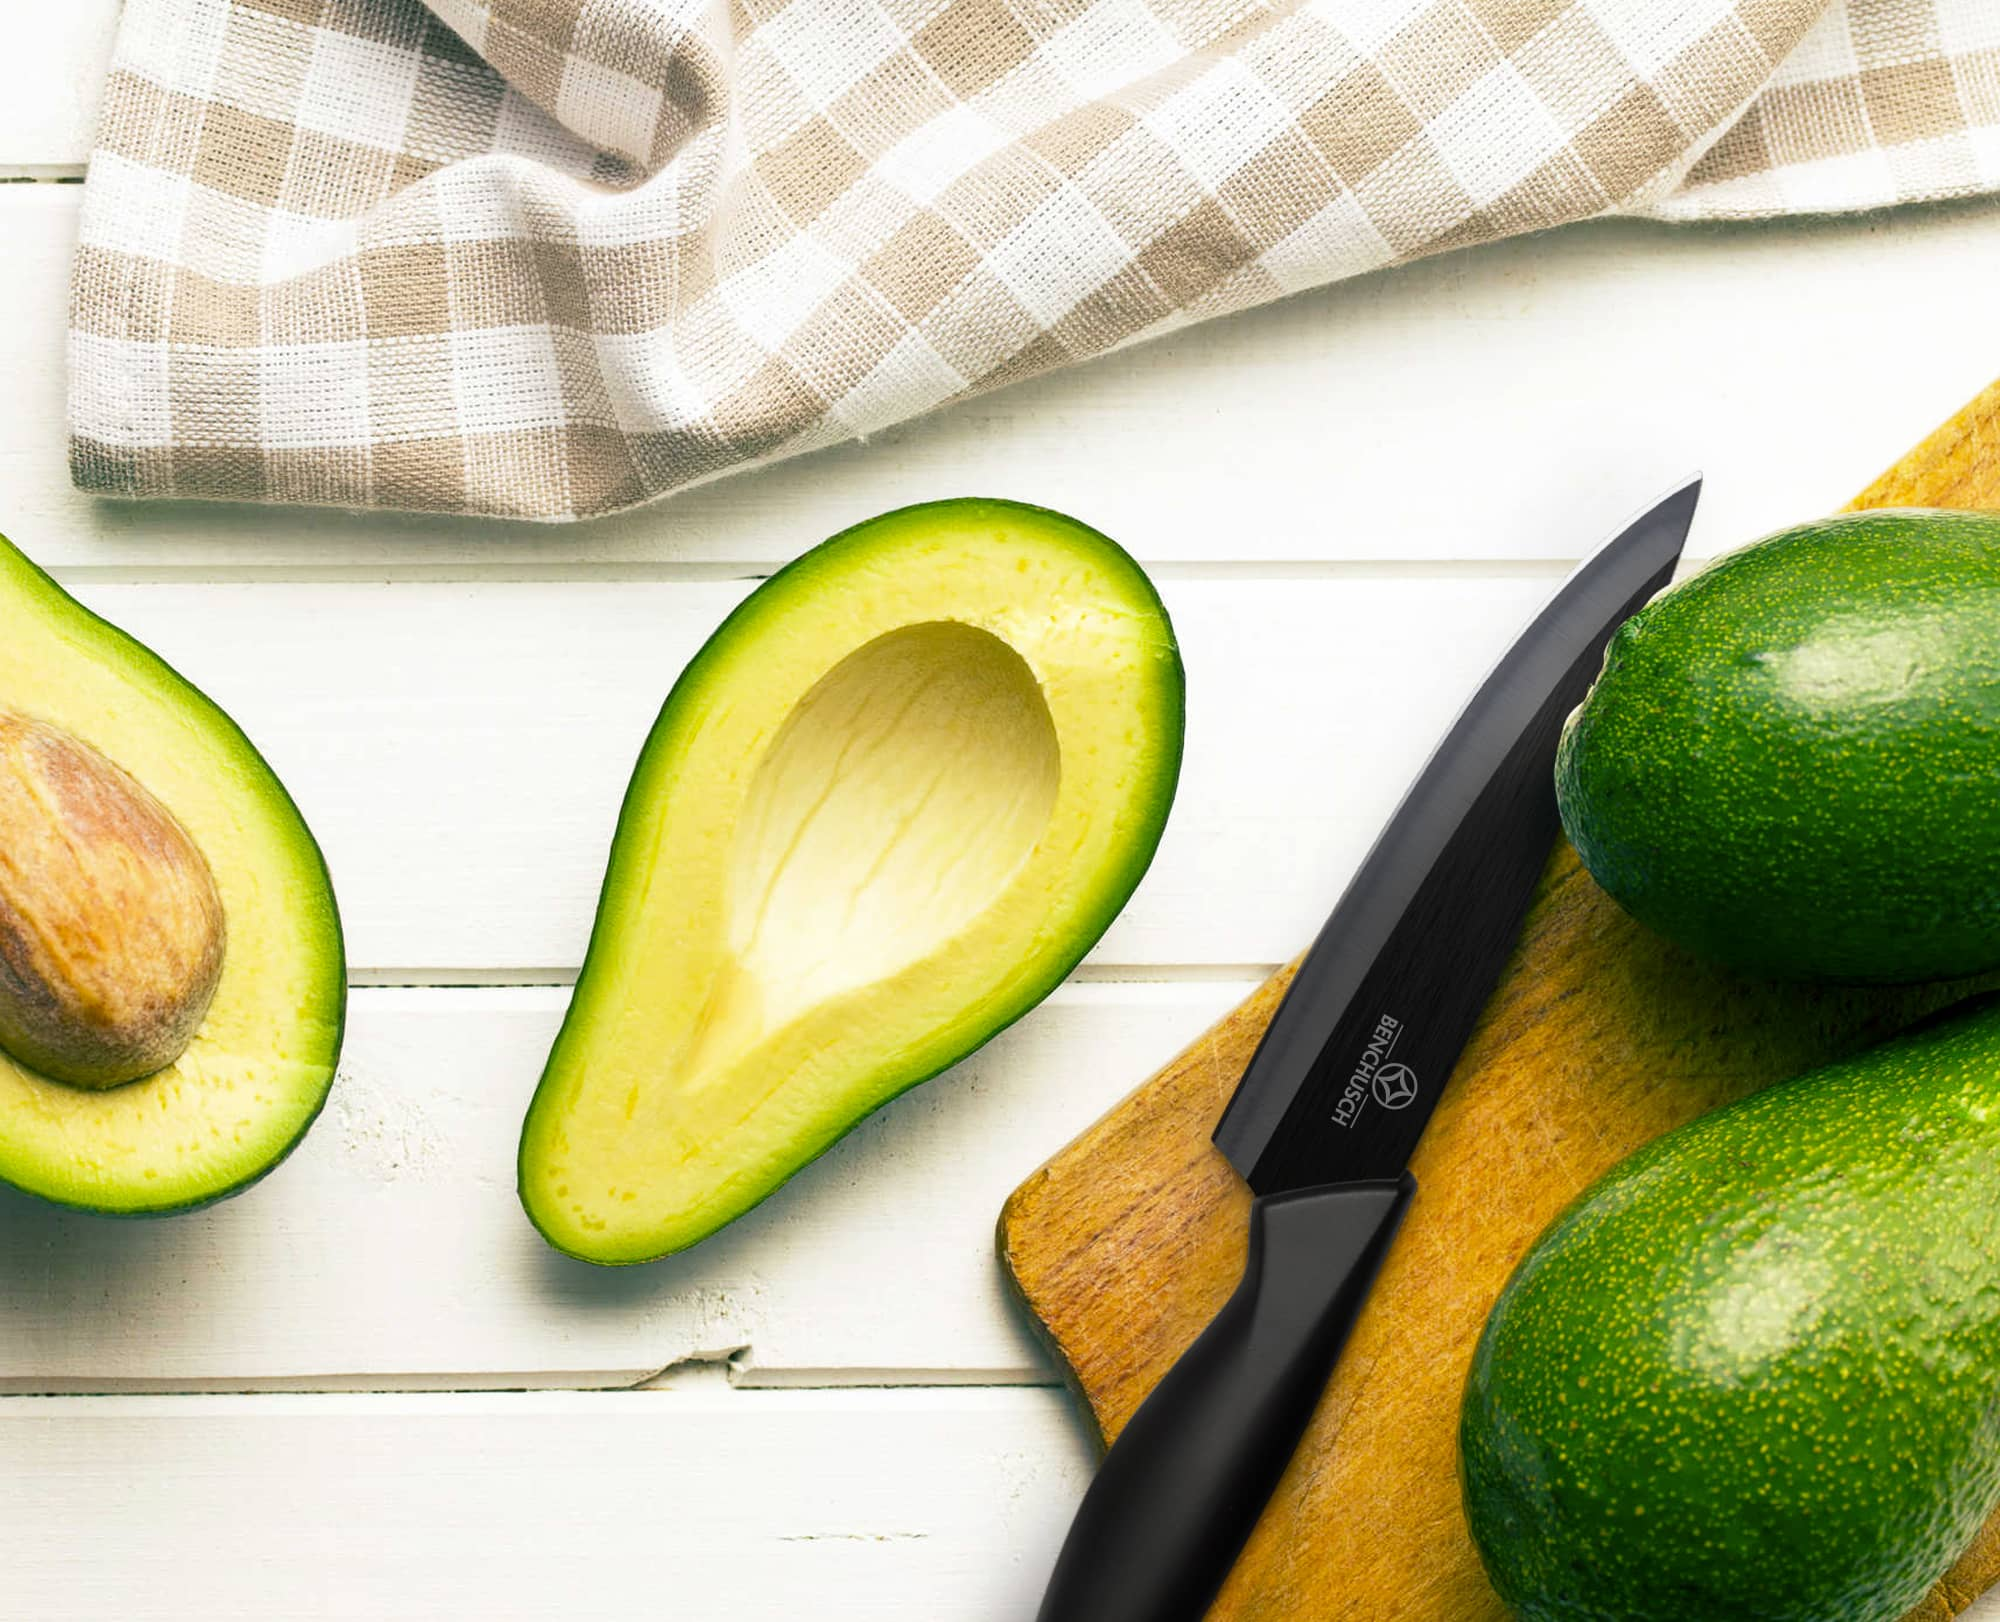 Benchusch Ceramic Knife 7 inch with cutting avocados and the chopping board on the bright wood background